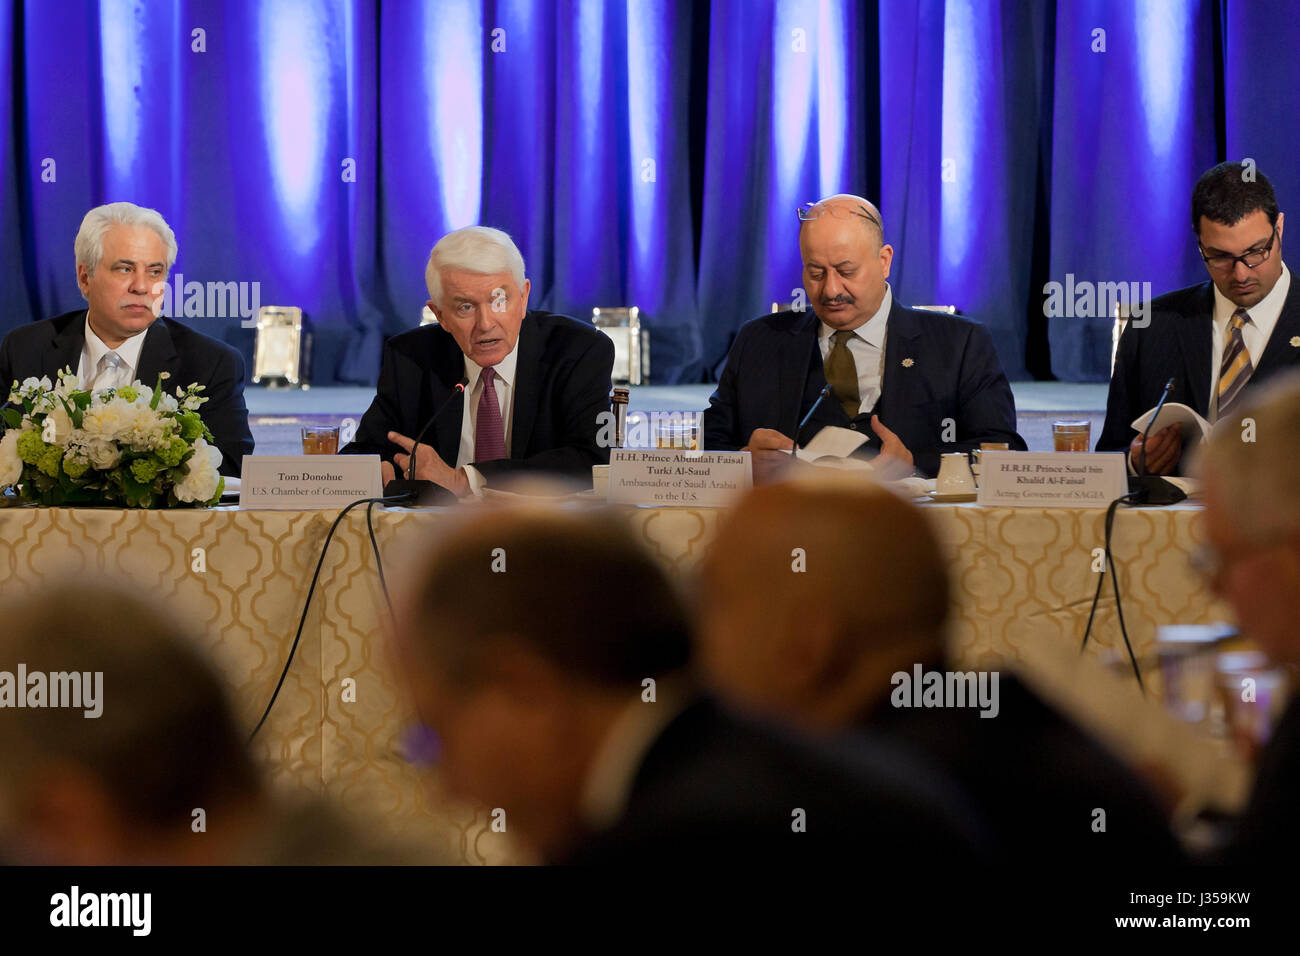 Tom Donohue, CEO/President of US Chamber of Commerce, speaking at US - Saudi CEO Summit  - US Chamber of Commerce, - Stock Image